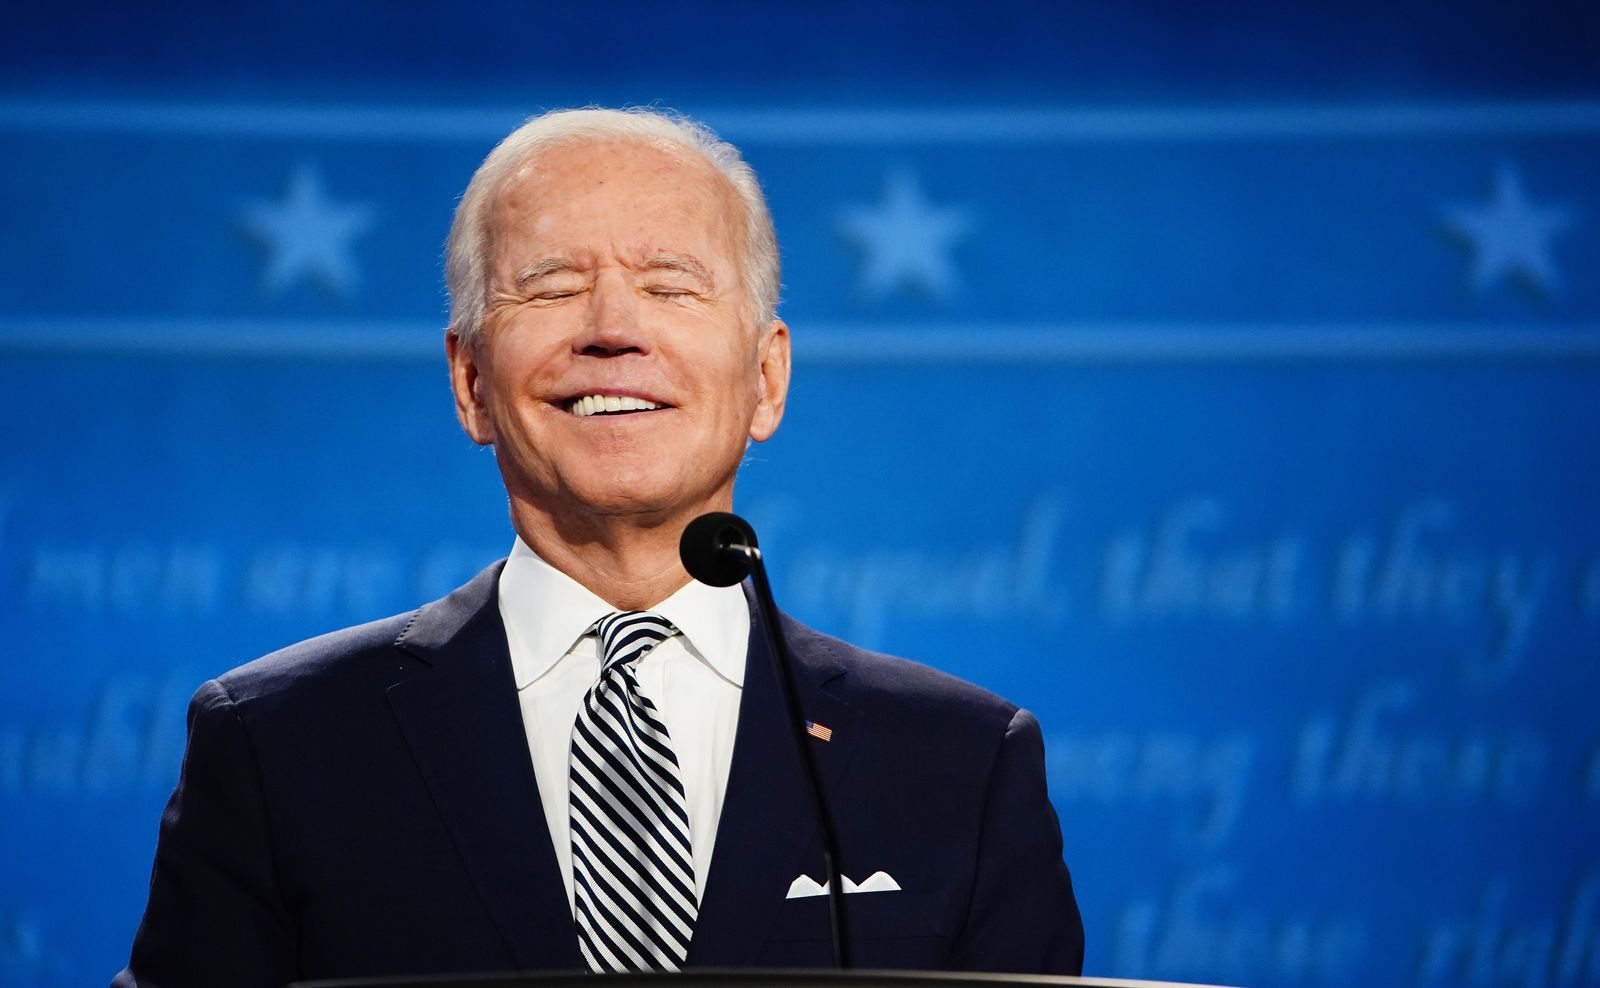 First 2020 presidential election debate between US President Donald J. Trump and Democratic presidential candidate Joe Biden, Cleveland, USA - 29 Sep 2020